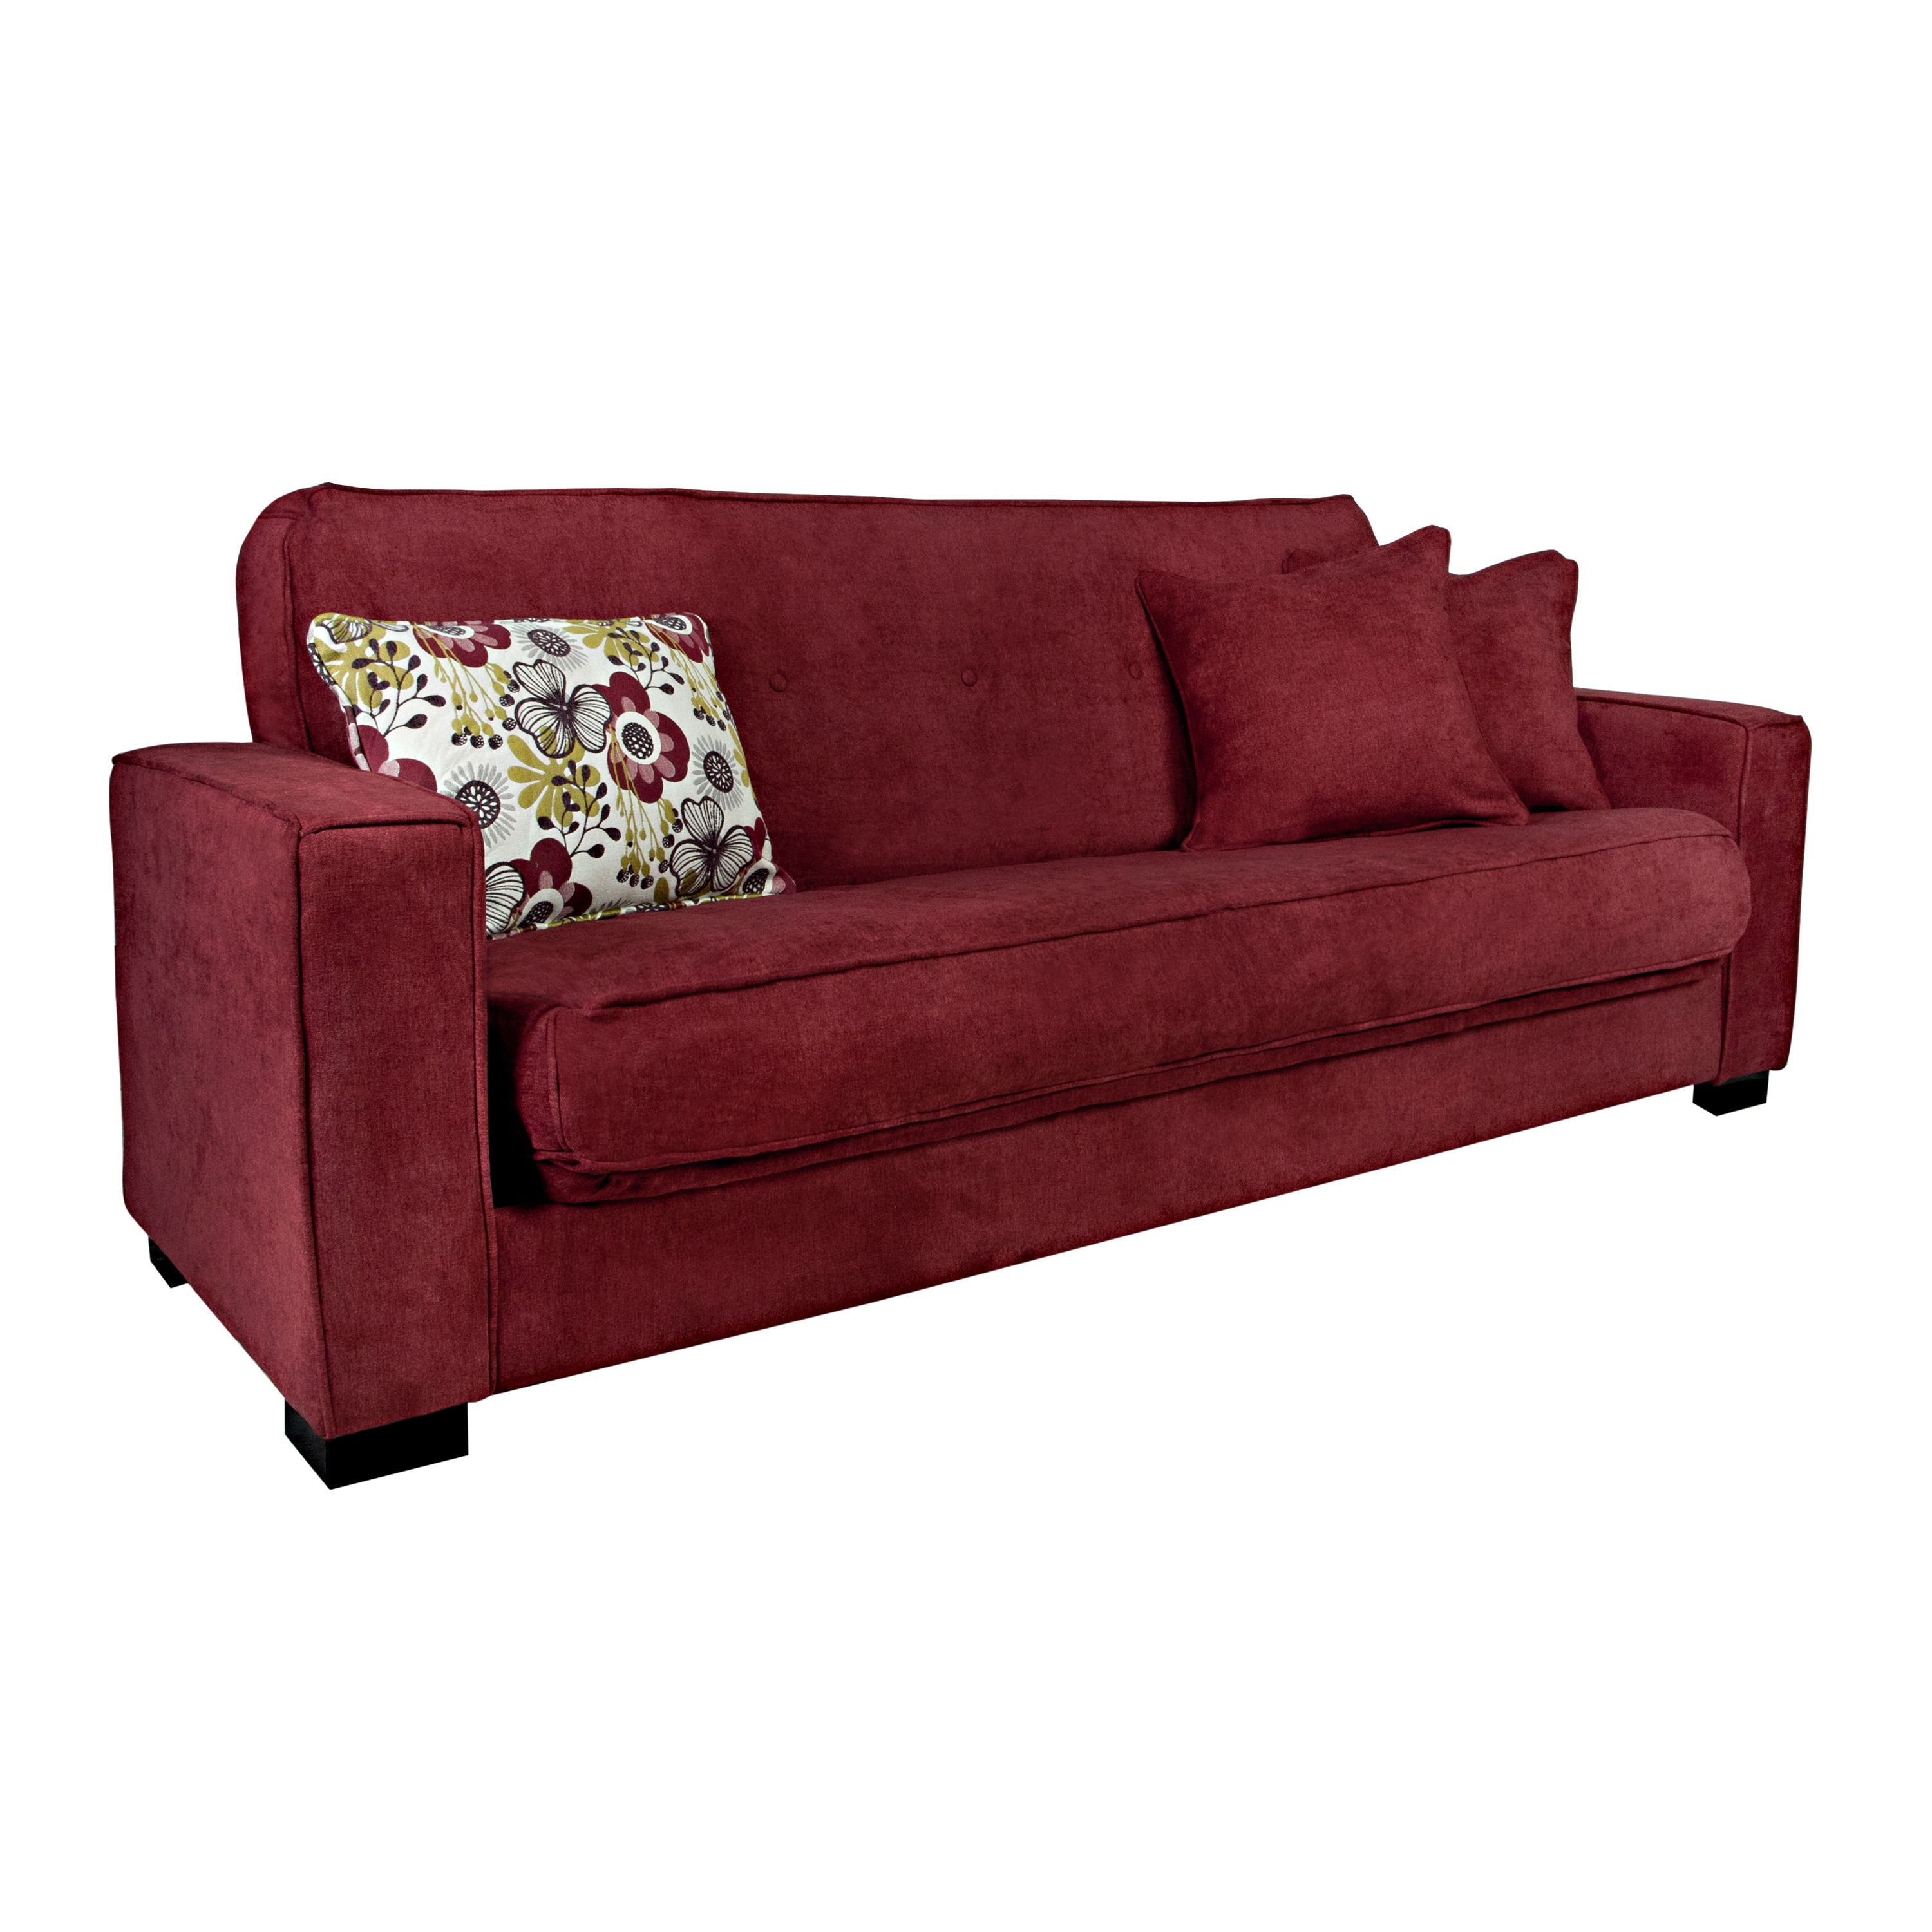 more fortable futon or sleeper sofa Best Futons & Chaise